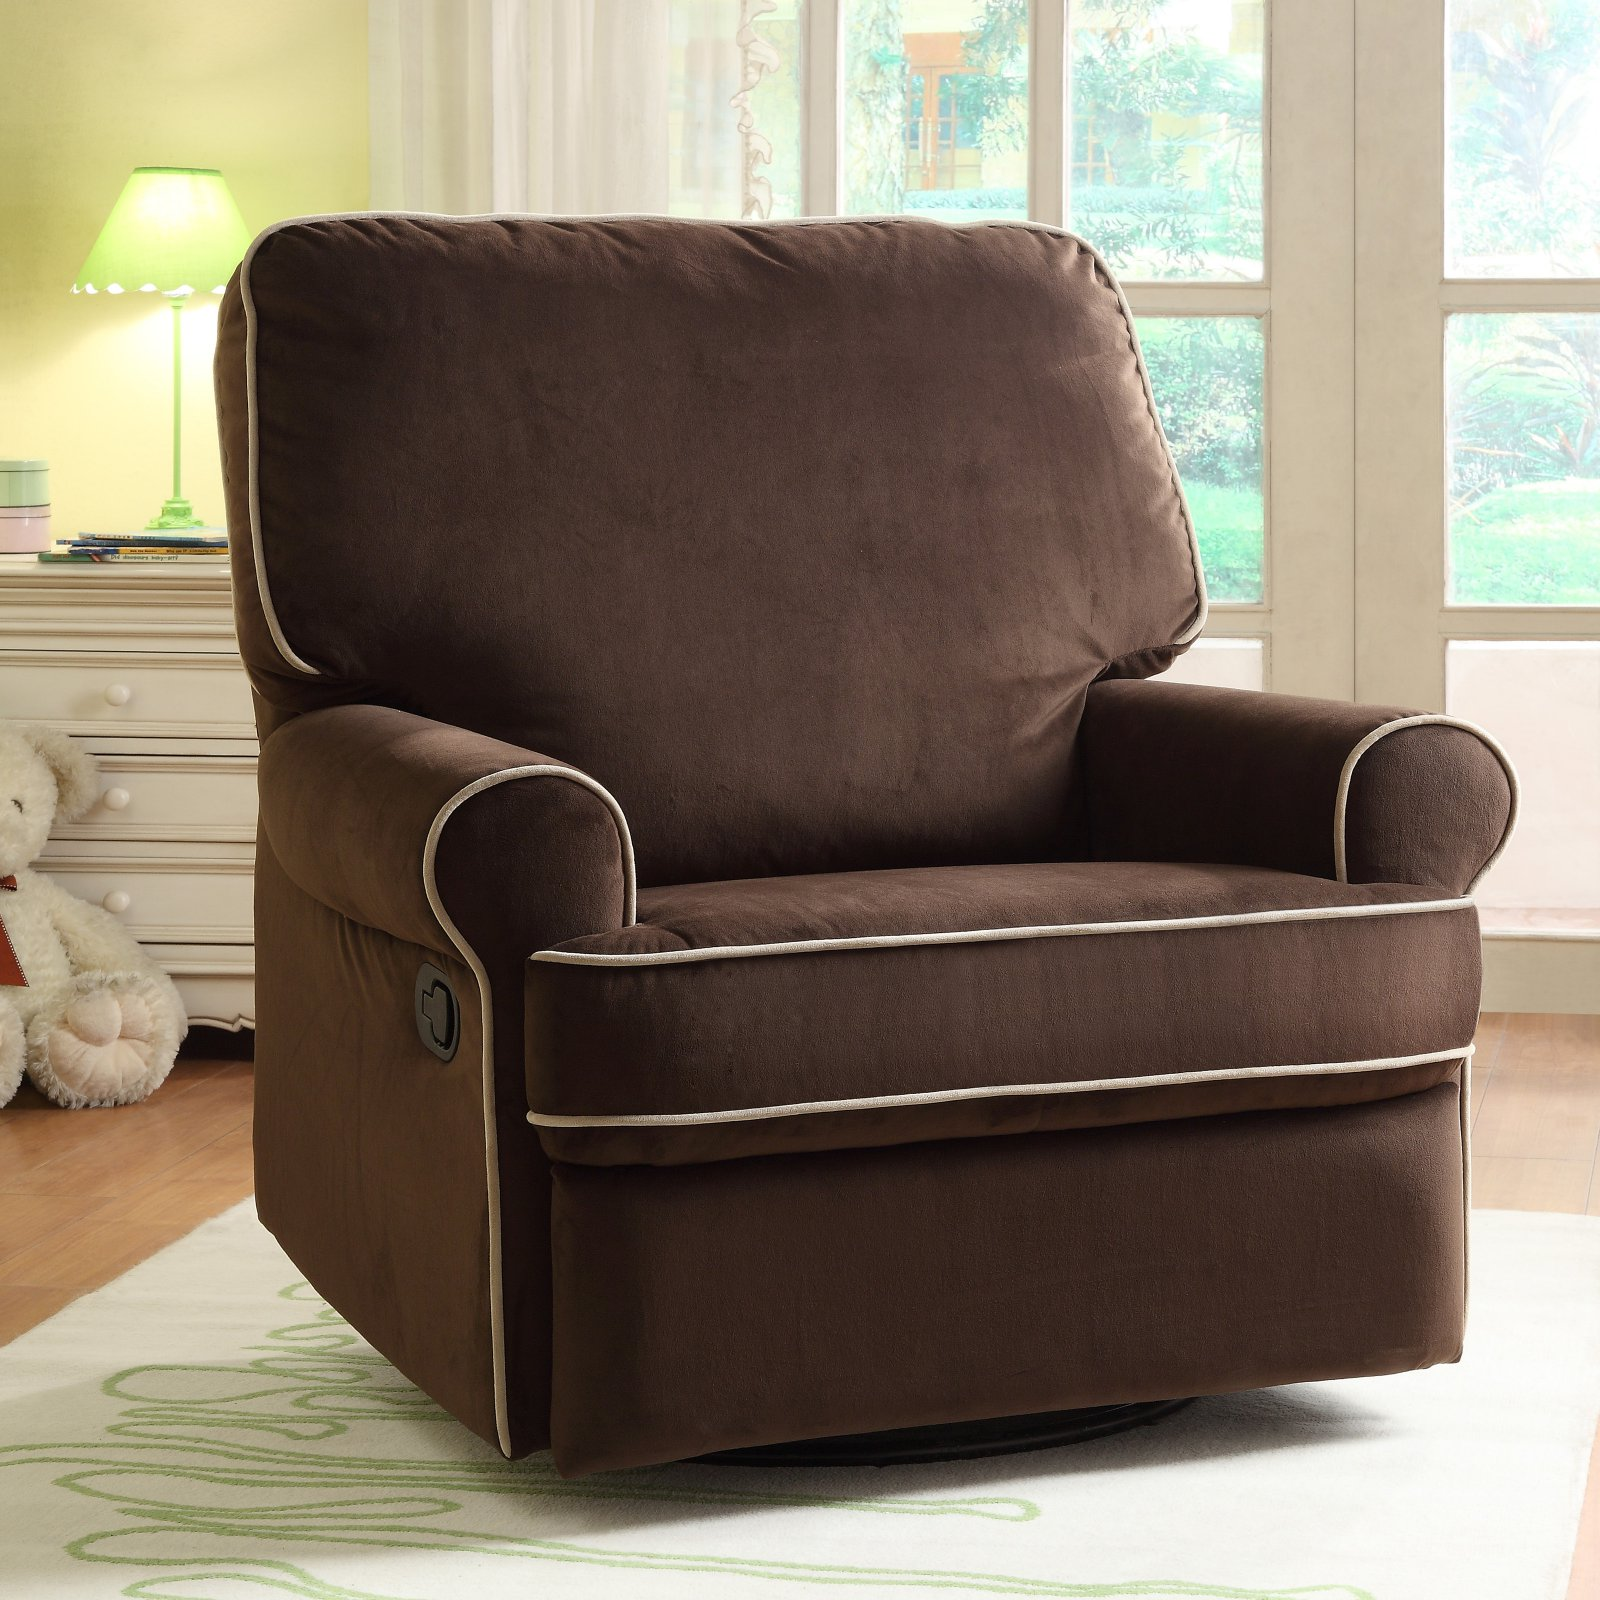 Home Meridian International Birch Hill Swivel Glider Recliner Stella Contrast Piping, Brown by Prime Resources International